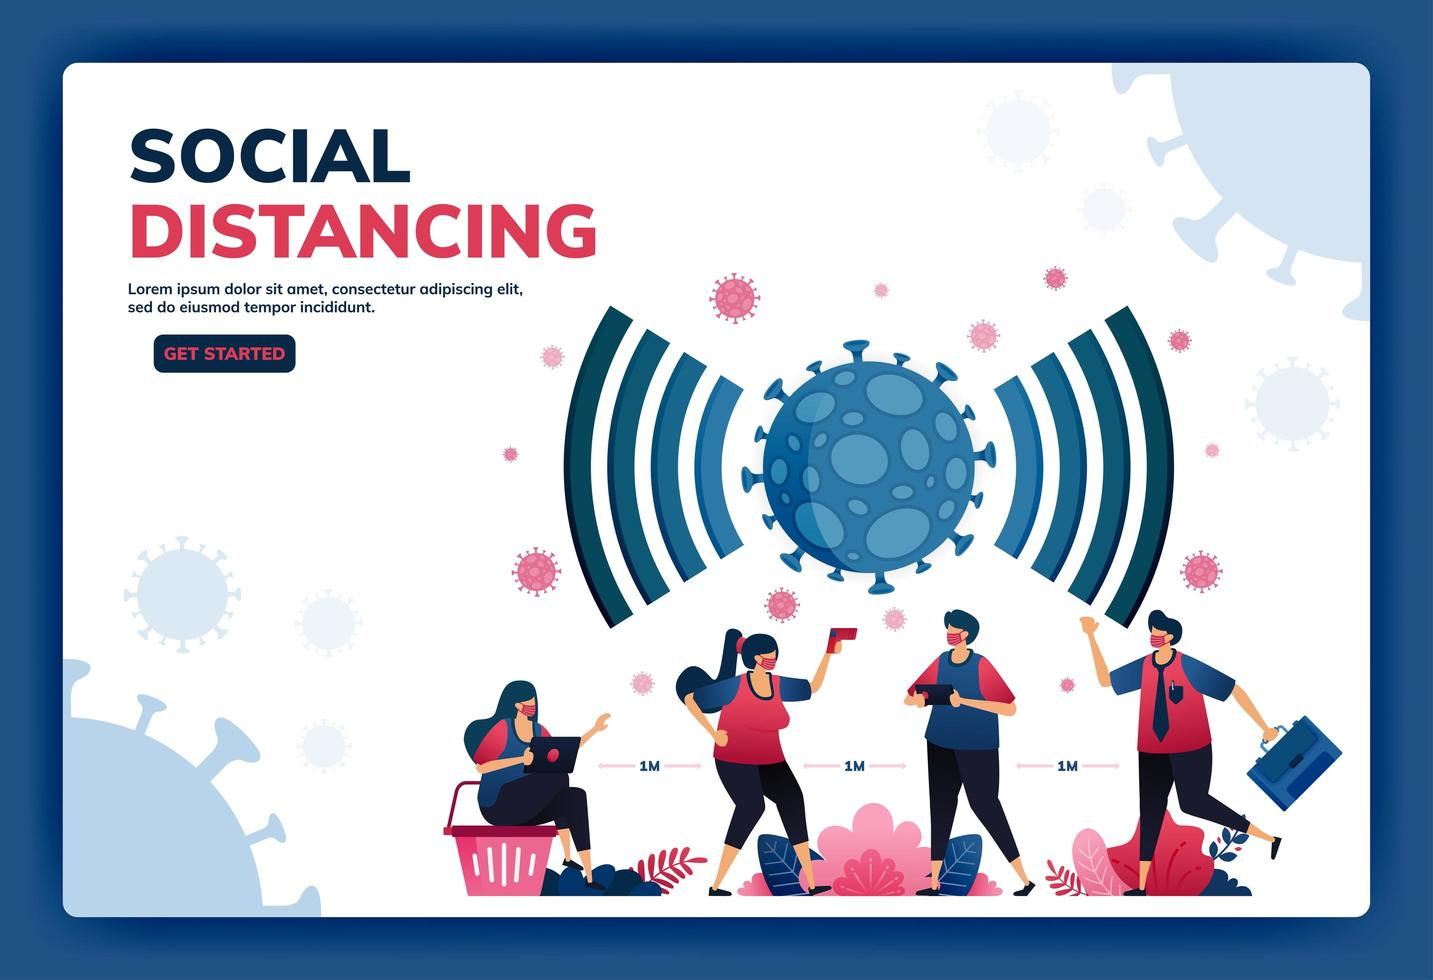 Landing page vector illustration of social distancing and new normal protocols for work and activities during a pandemic. Symbol icon for virus, radar, signal, network and wifi of covid-19. Web, apps